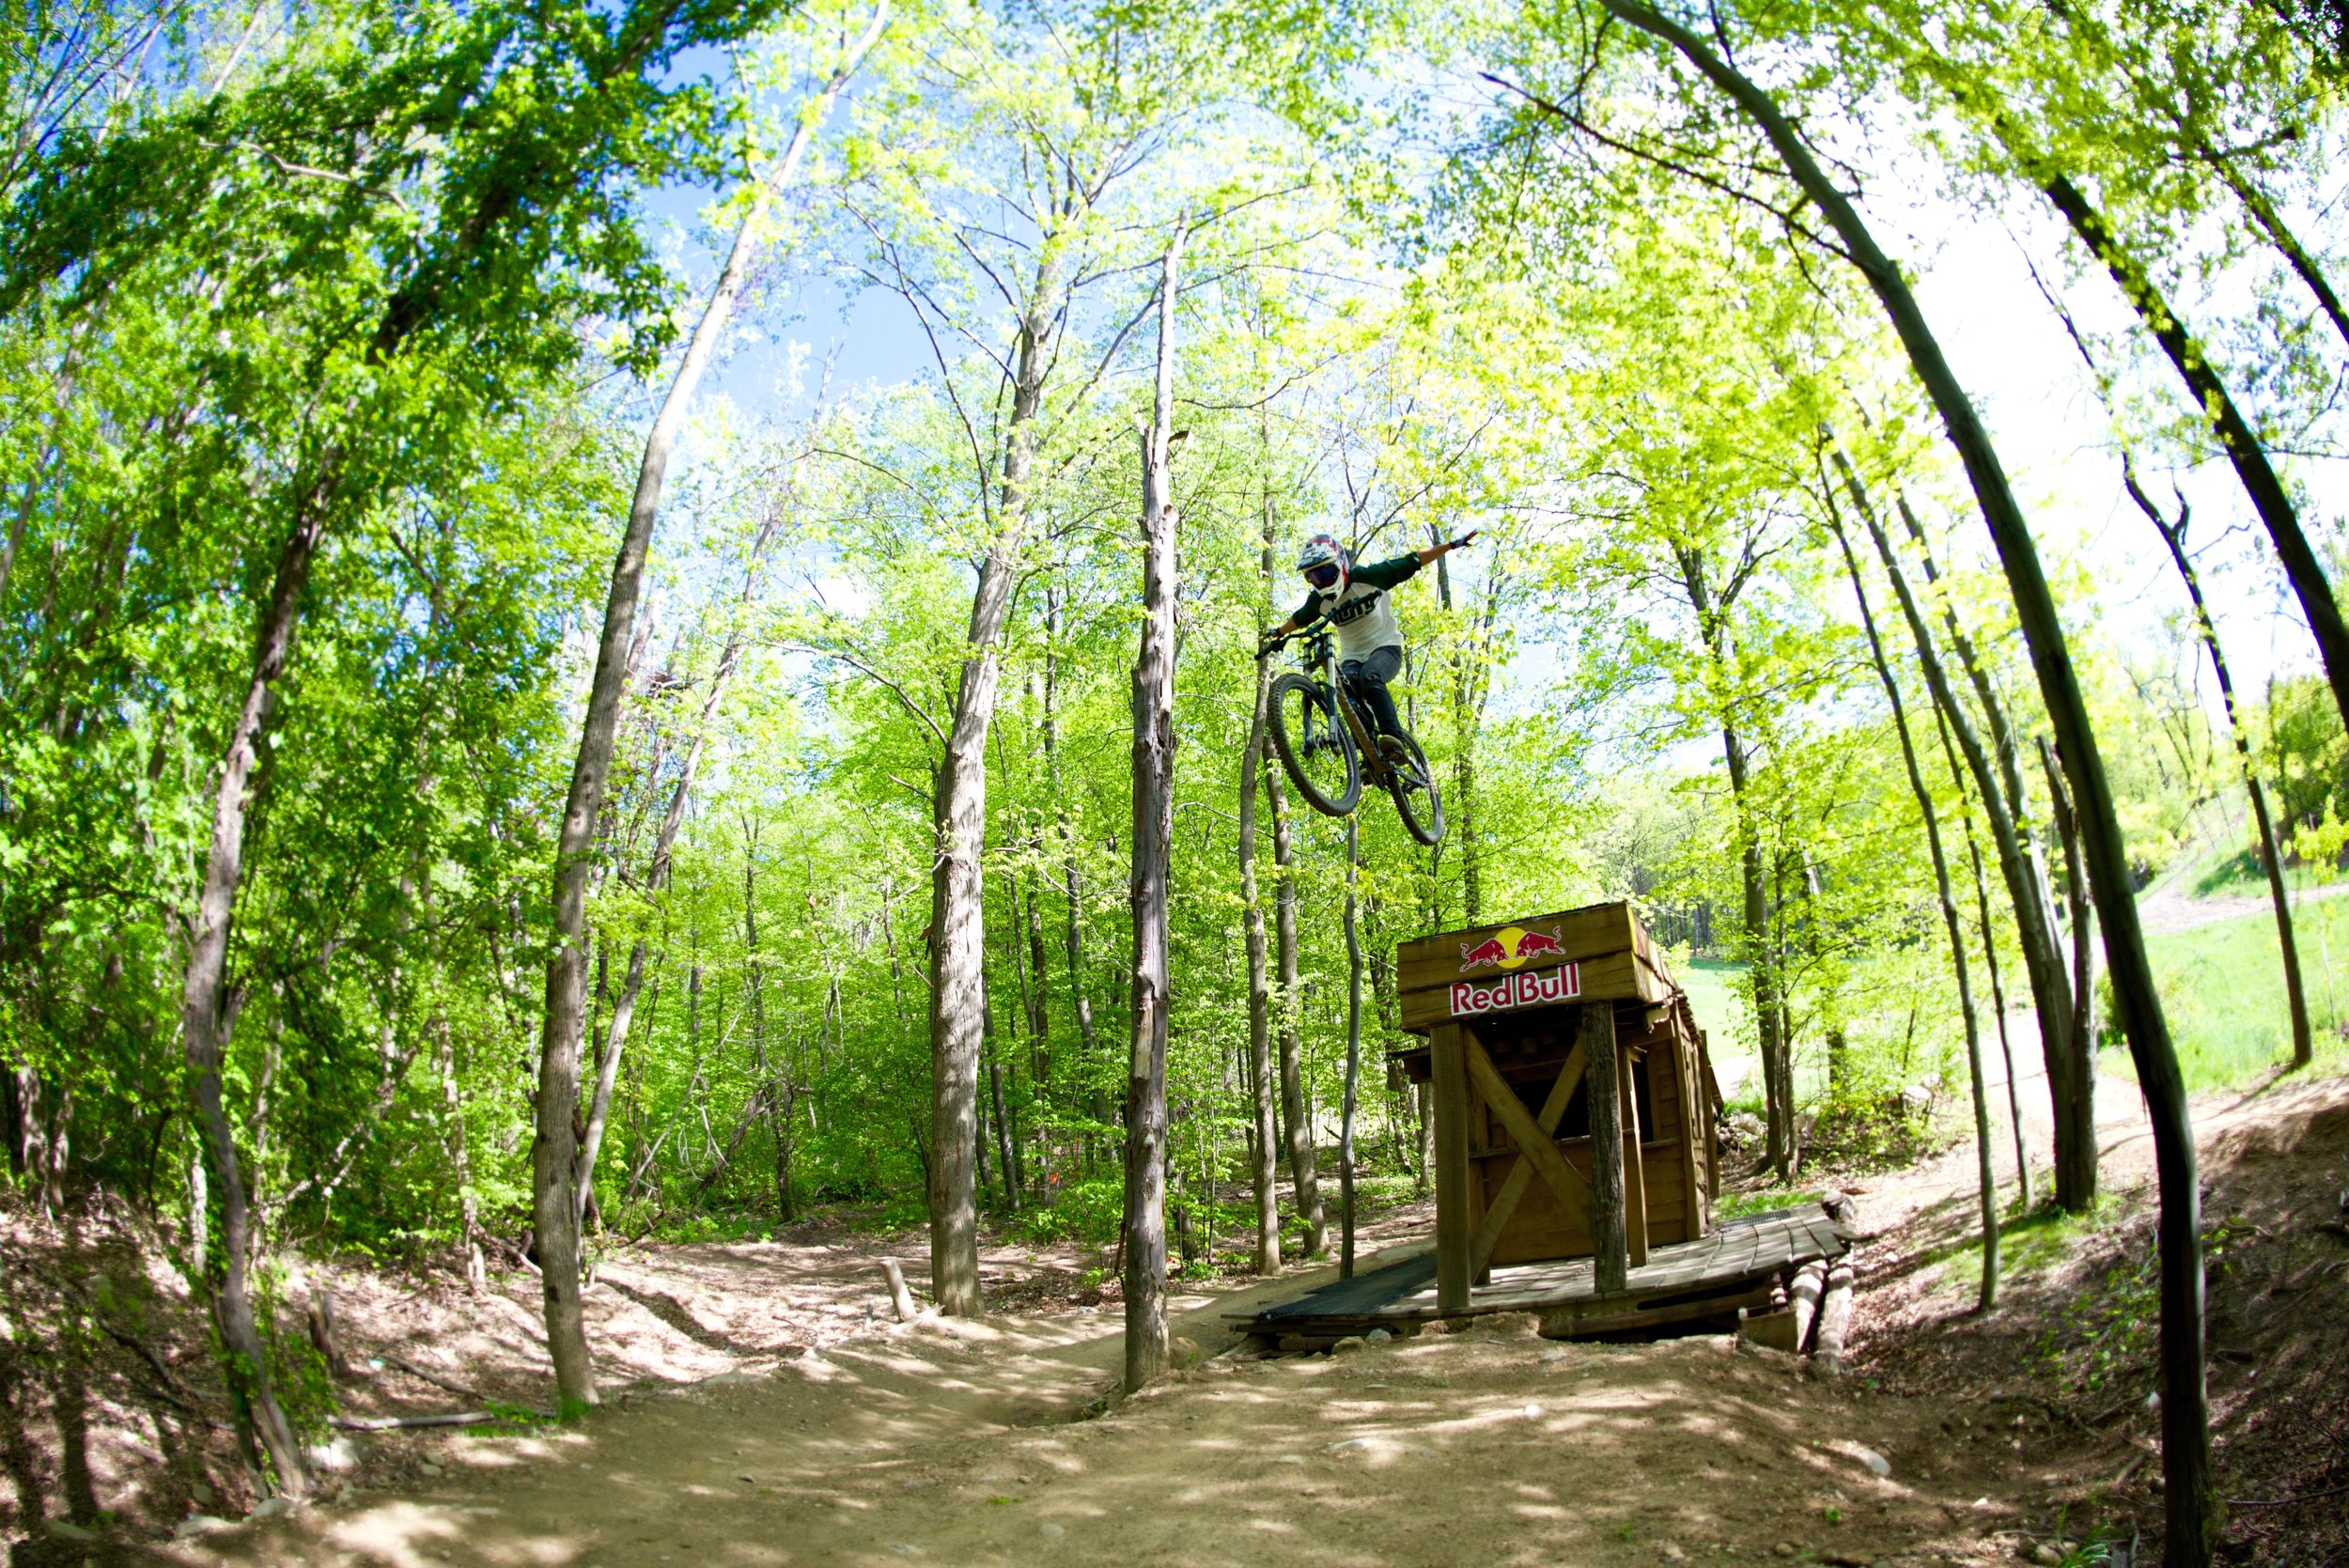 Ming has suicide no handers on lock down!! Mountain Creek bike park. Photographer: David Palling